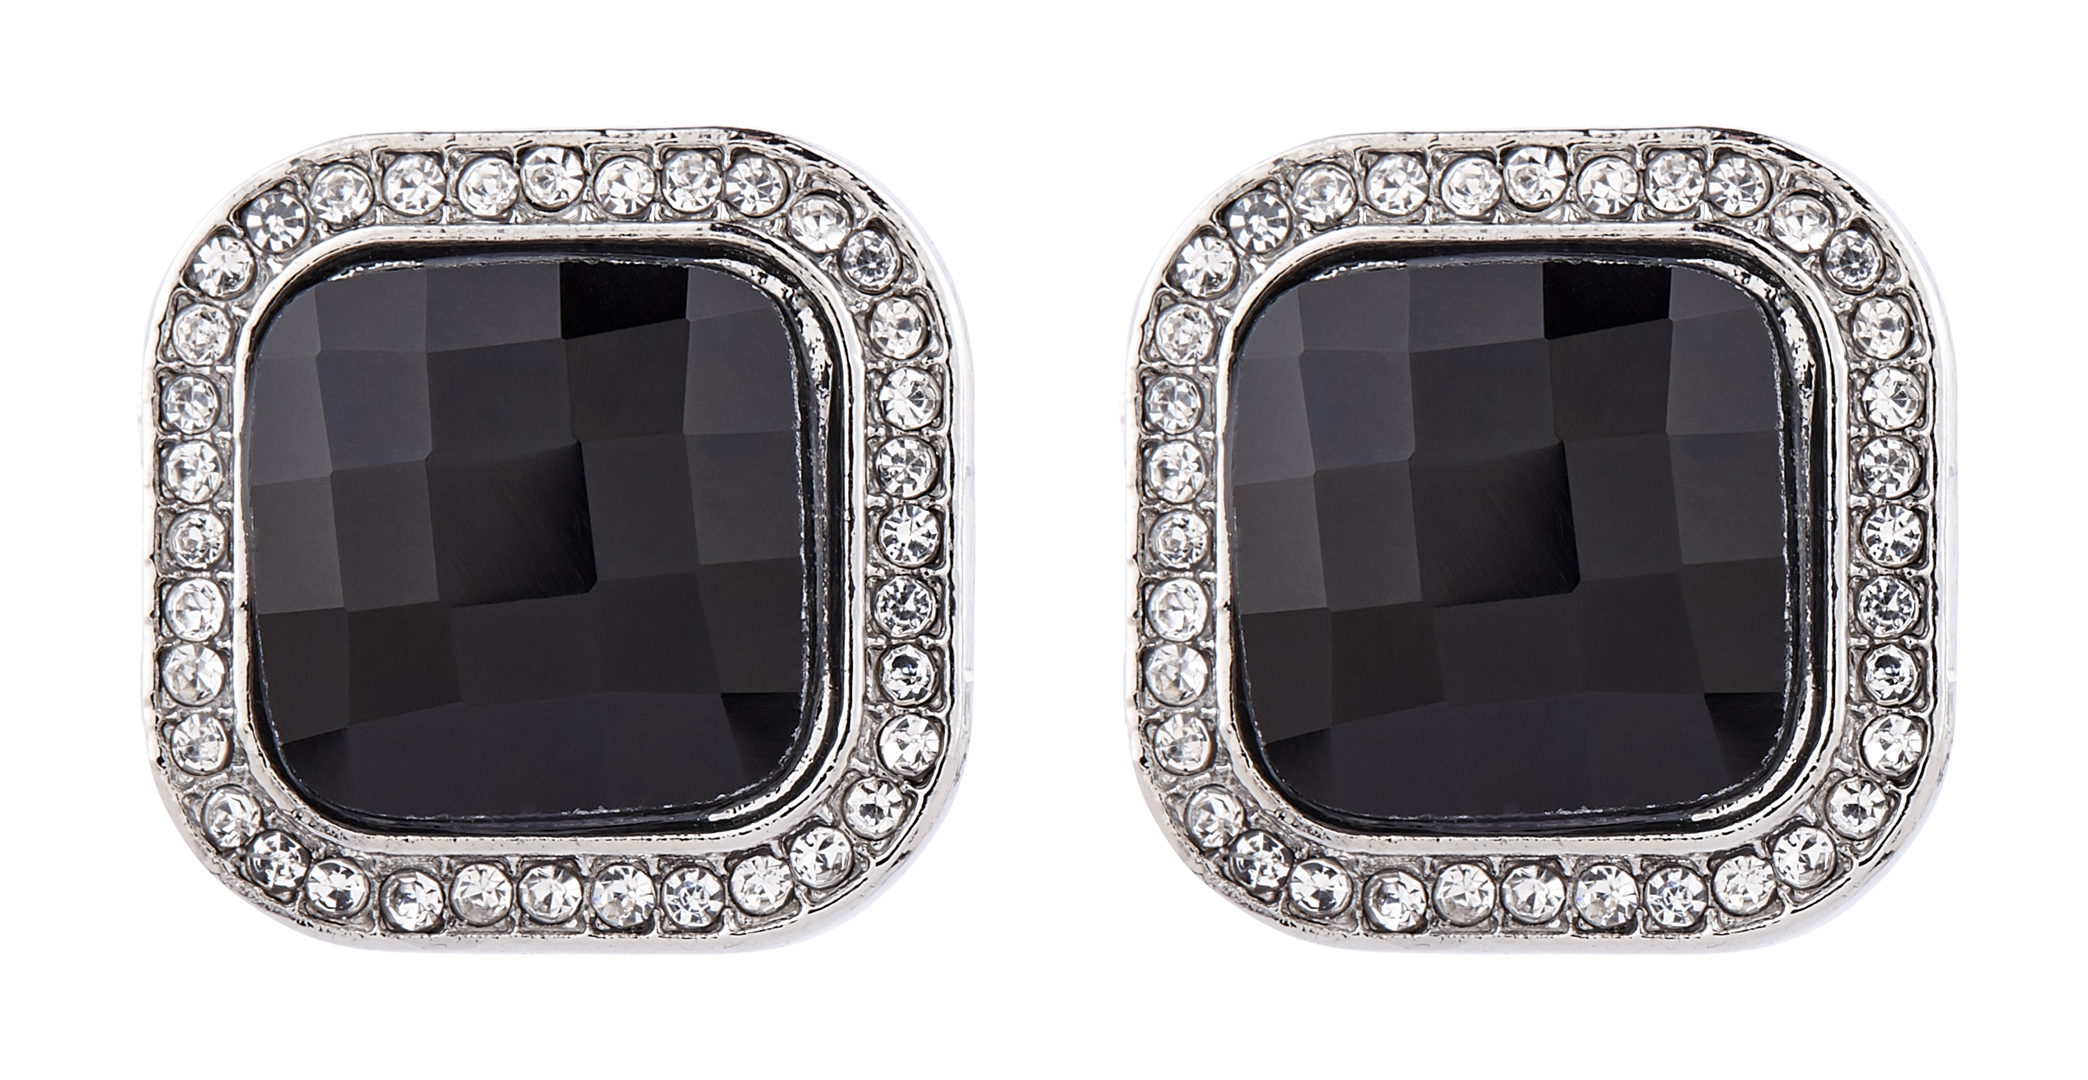 Clip On Earrings - Wendy - silver stud earring with crystals and a black stone